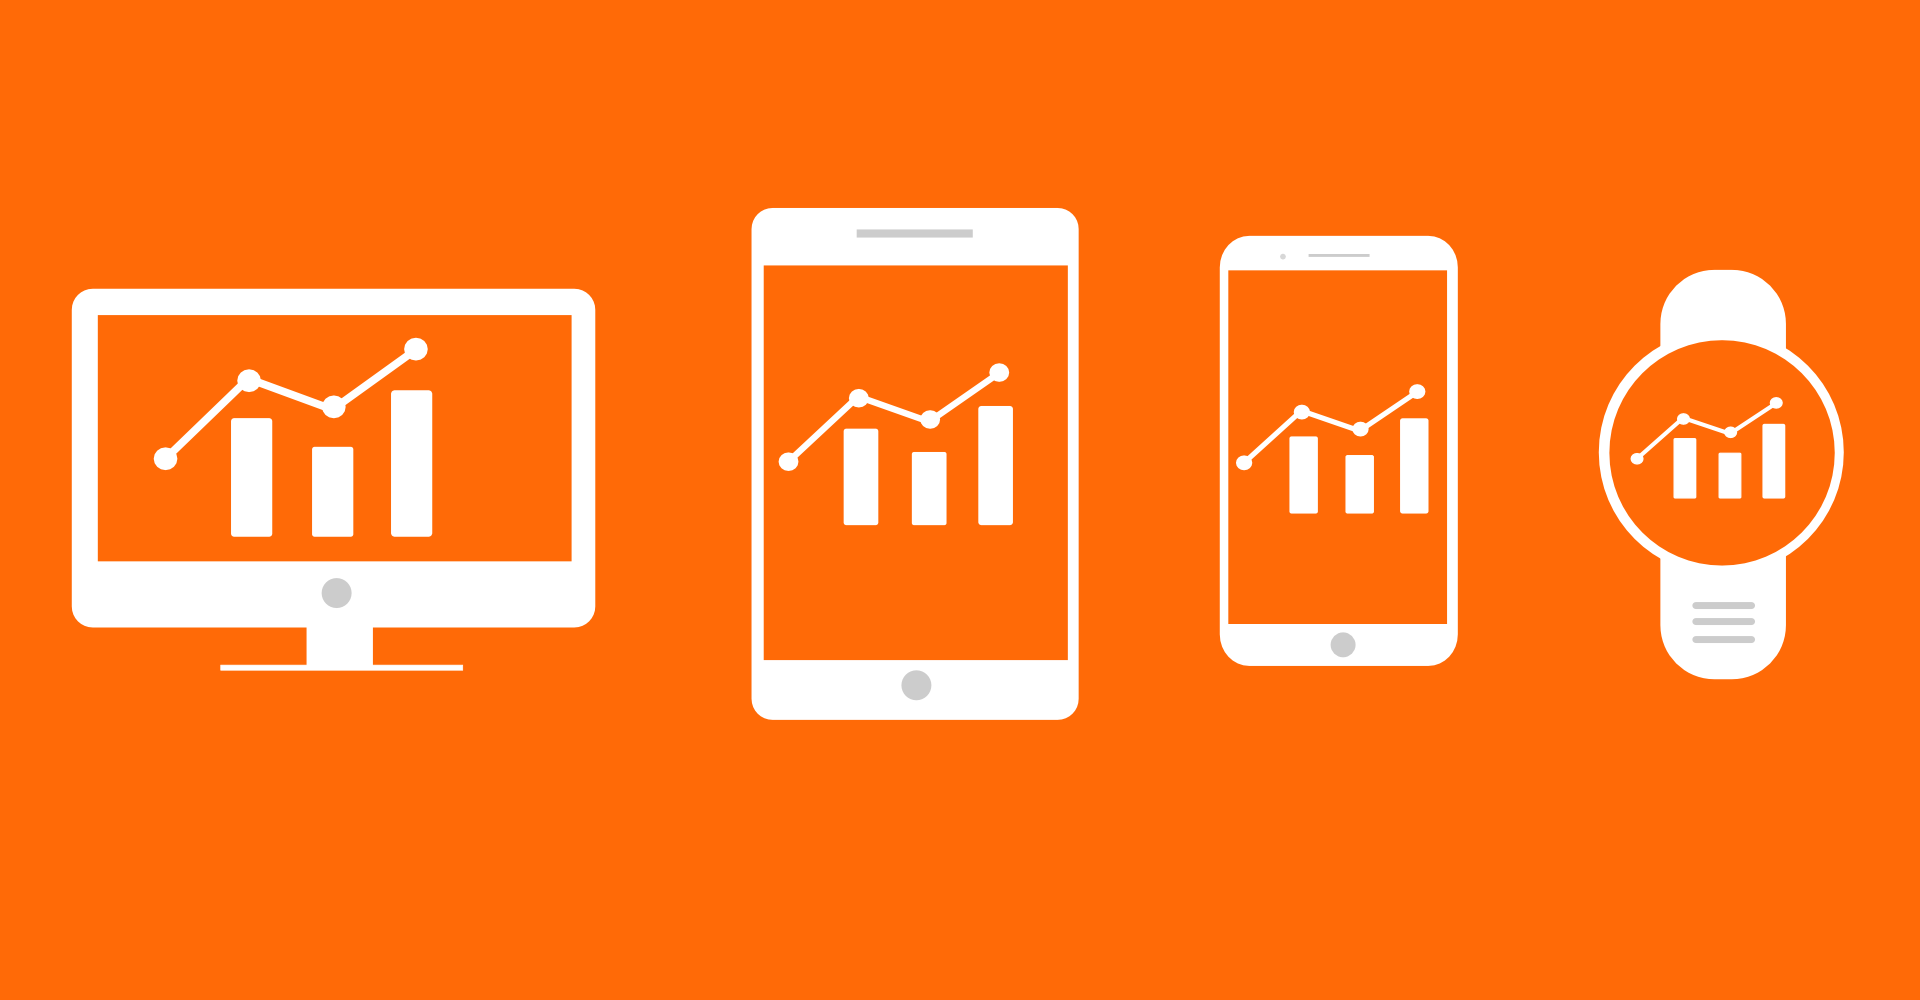 Advanced tracking and analytics for magazines on all devices - flat graphic